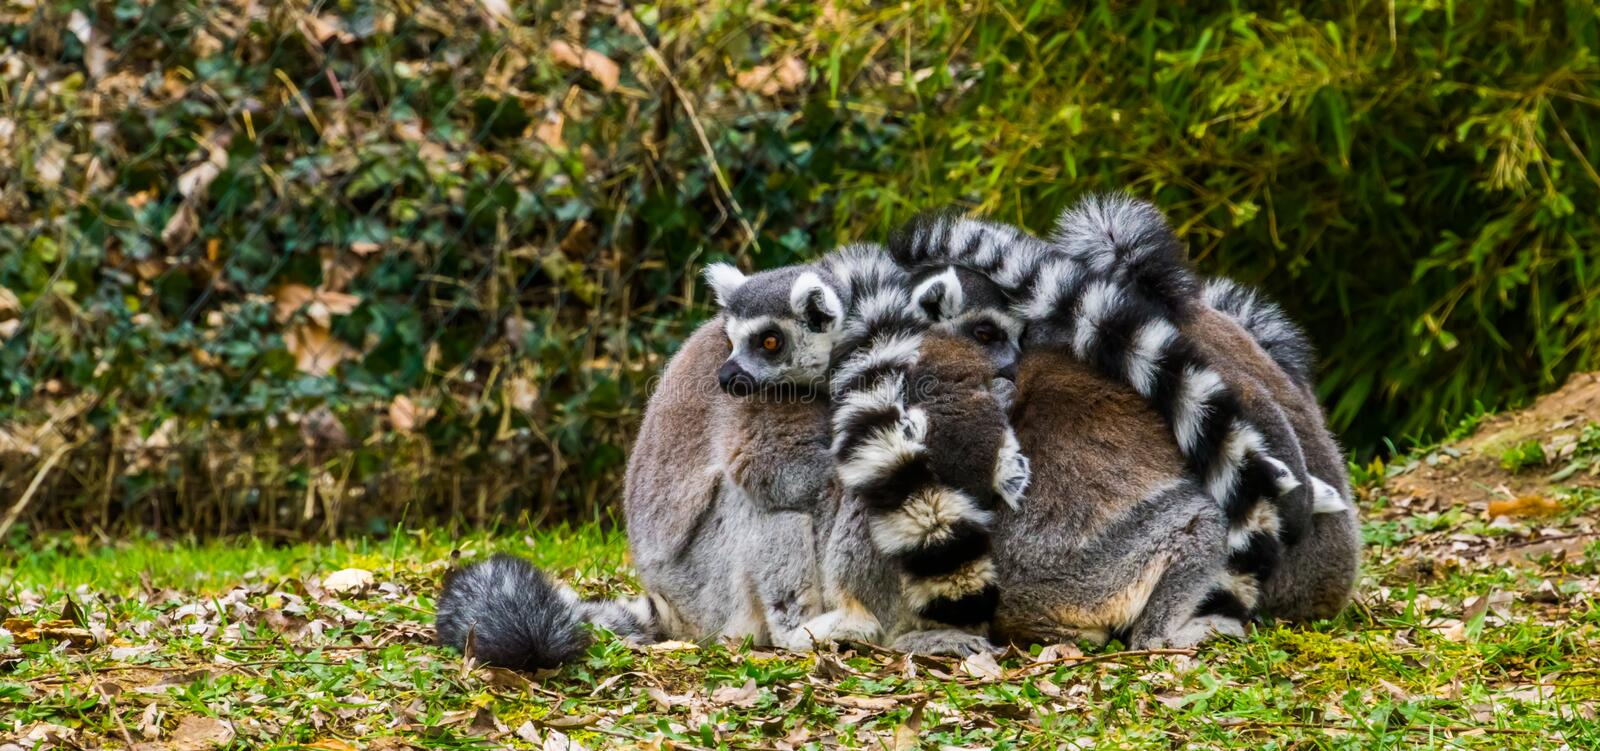 Close group of ring tailed lemur monkeys hugging each other, funny and adorable animal behavior stock images